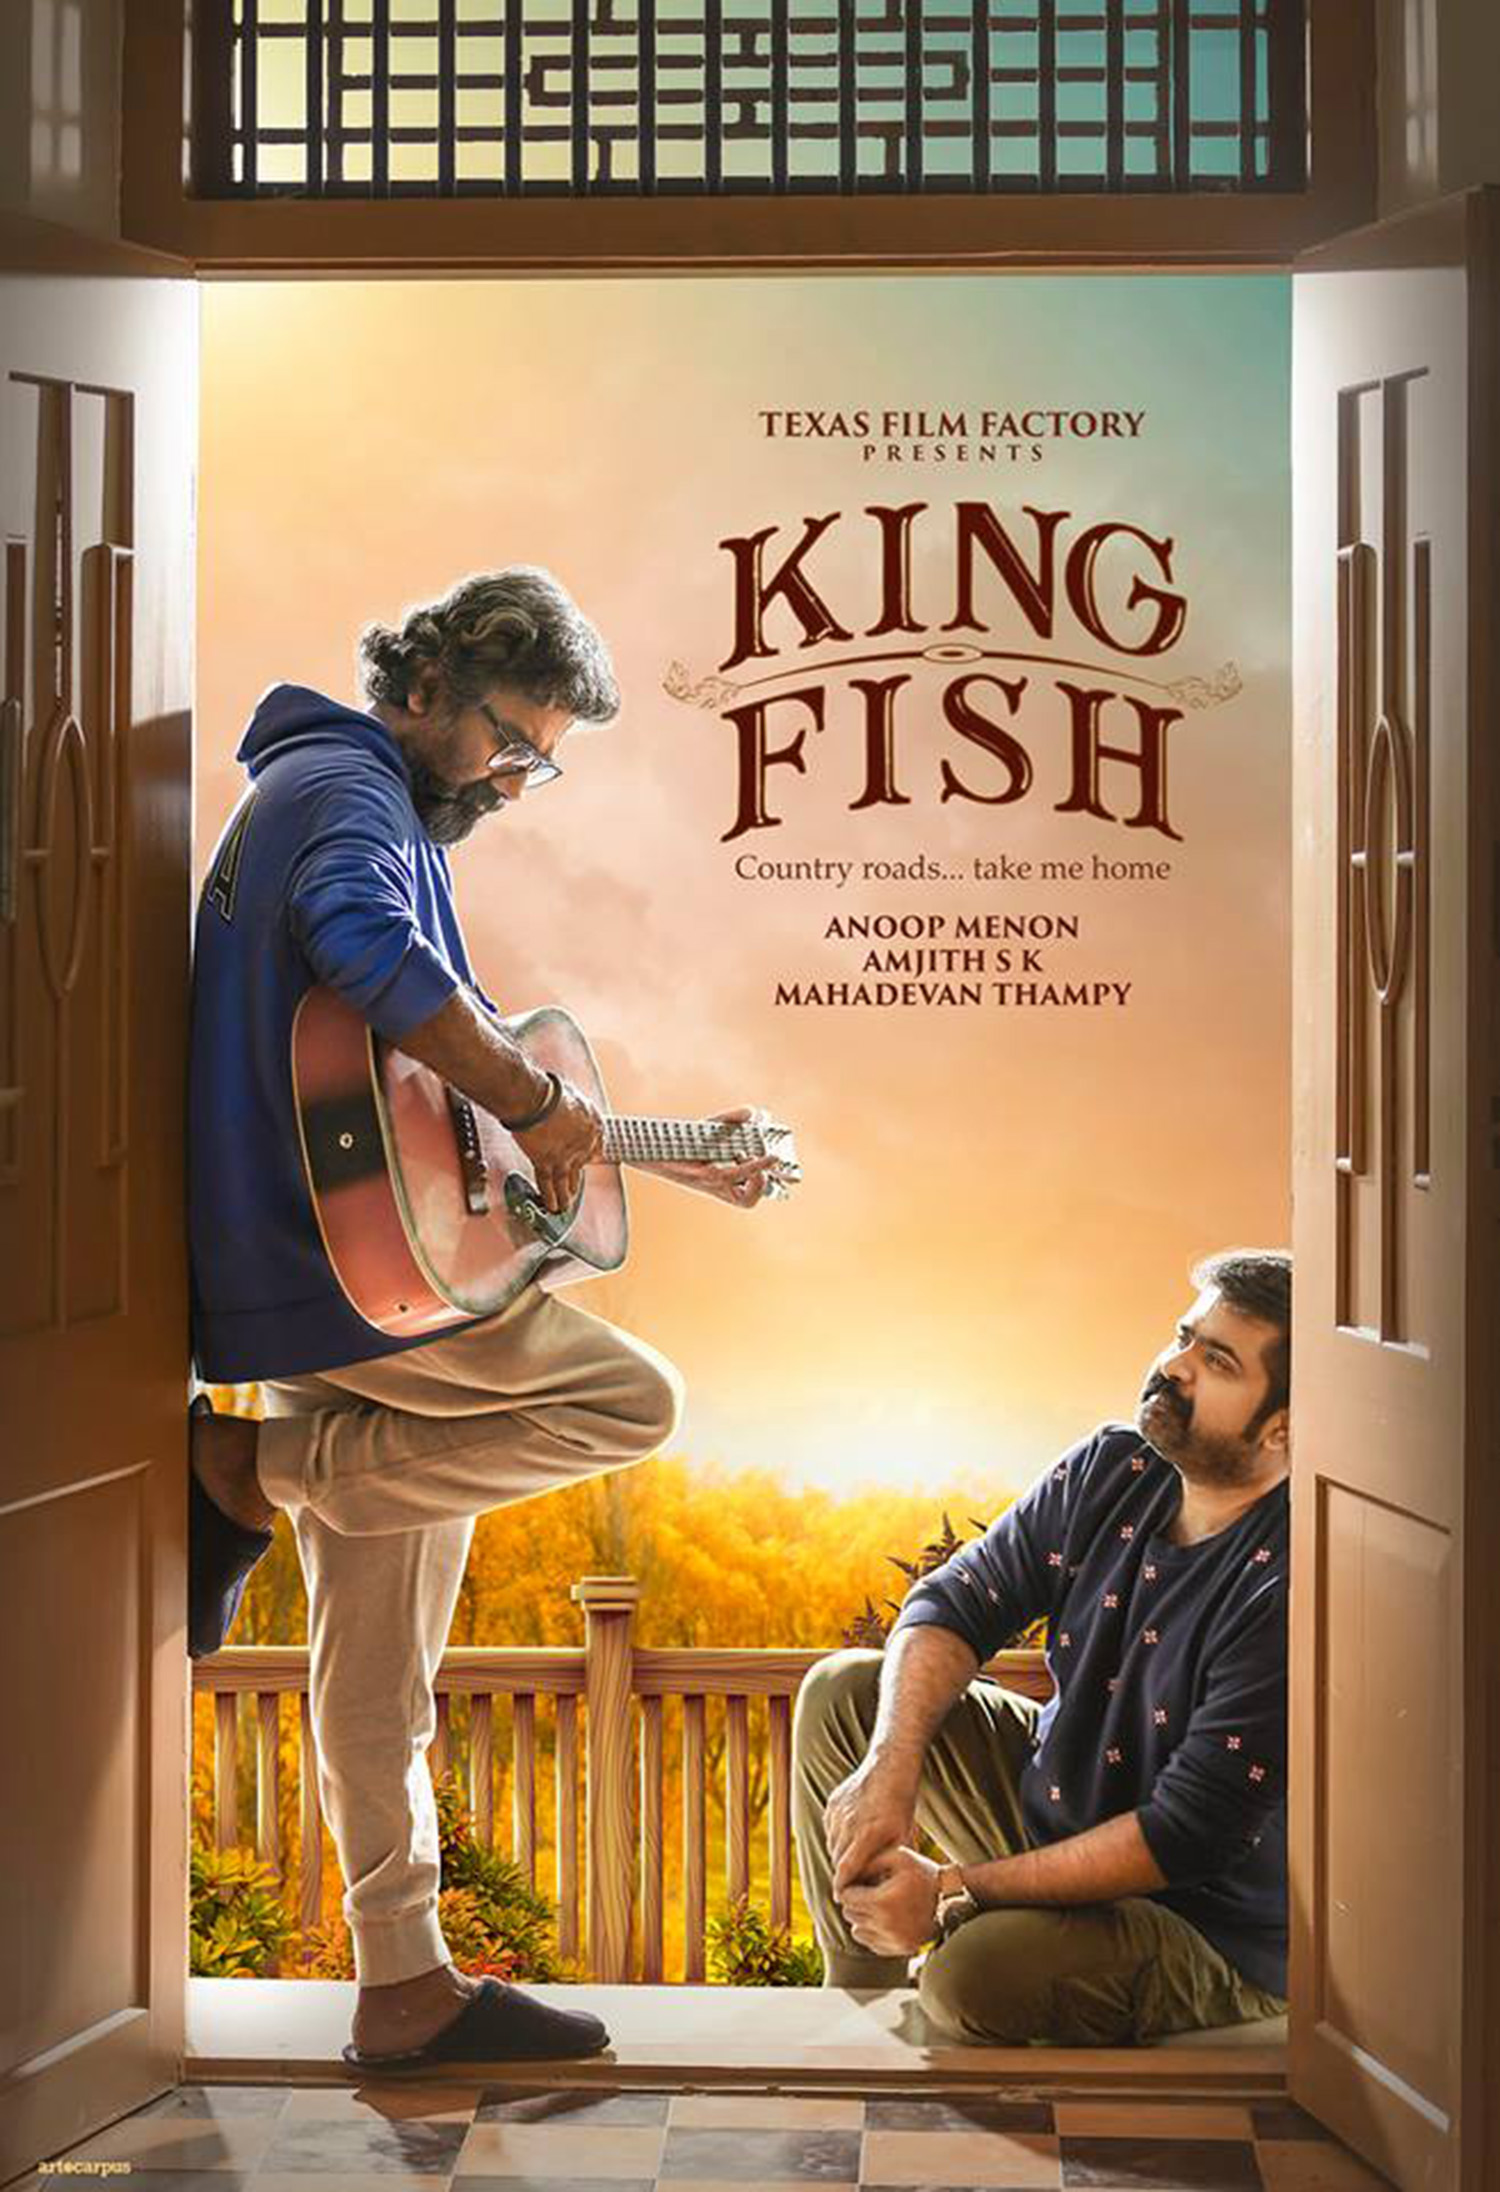 king fish,king fish malayalam movie,king fish,king fish movie poster,anoop menon,anoop menon's debut directional movie,director ranjith,anoop menon director ranjith movie,anoop menon and ranjith in king fish,anoop menon's new movie,director ranjith's new movie